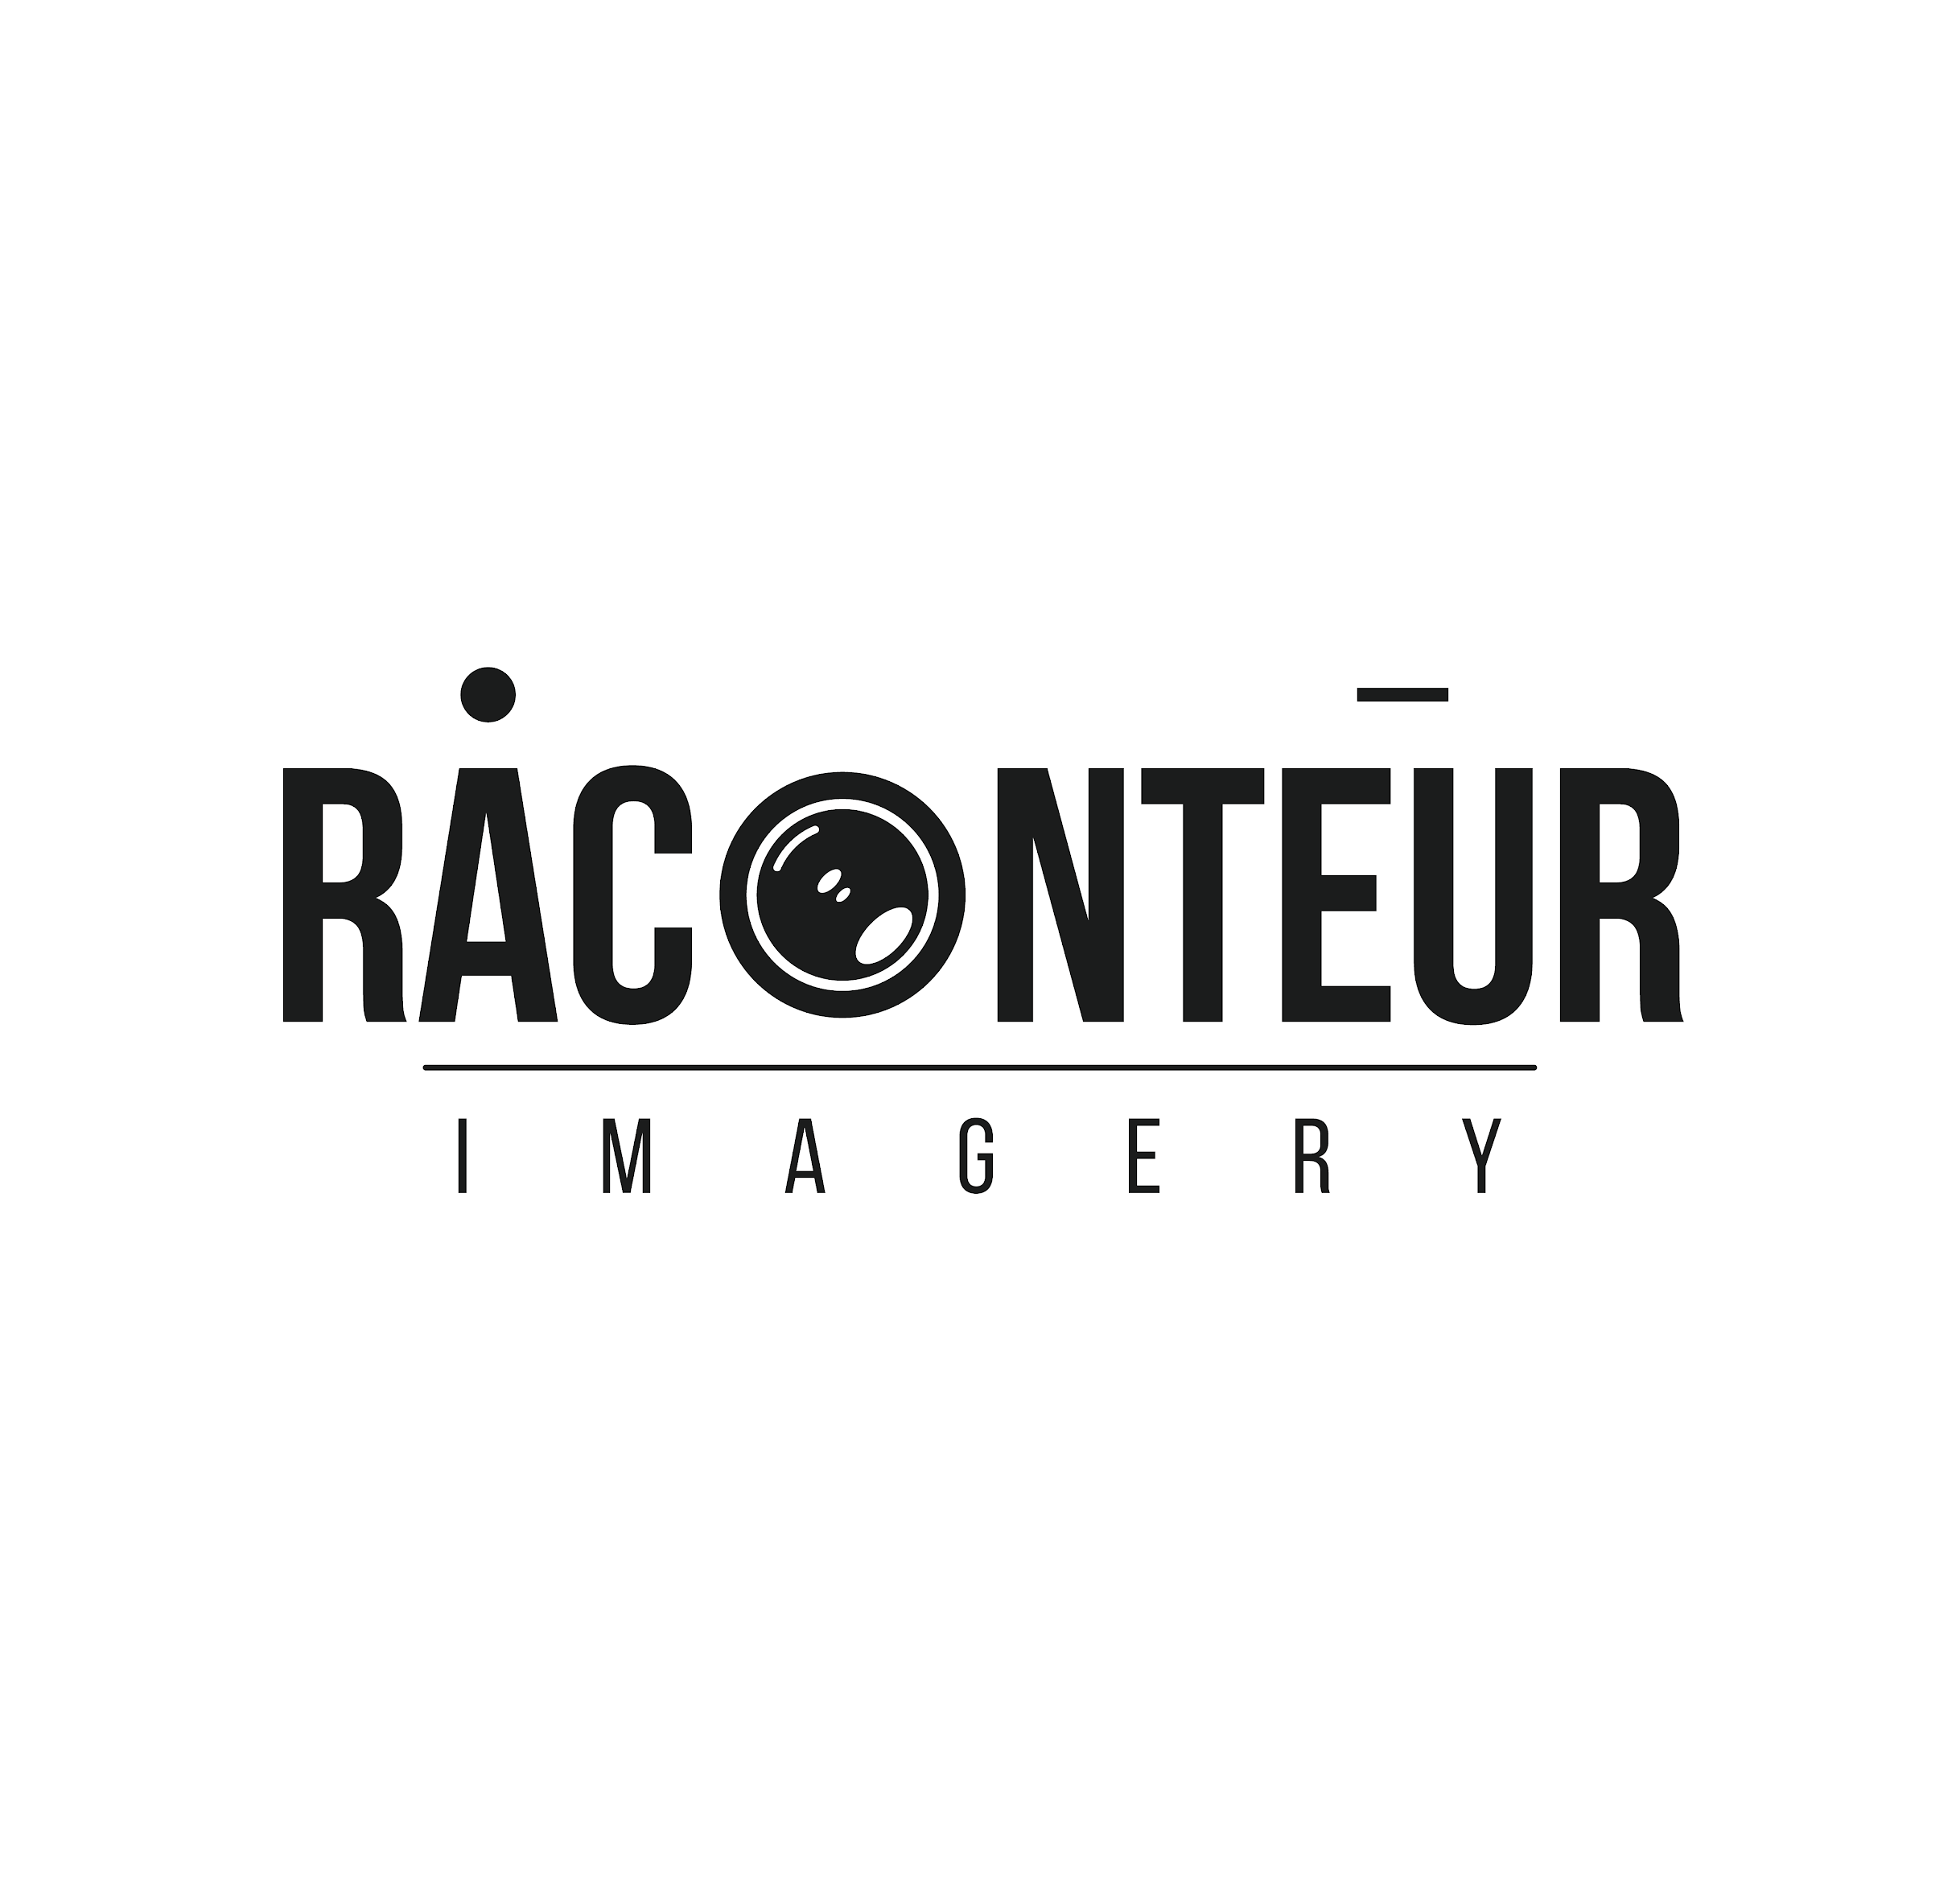 RaconteurImagery